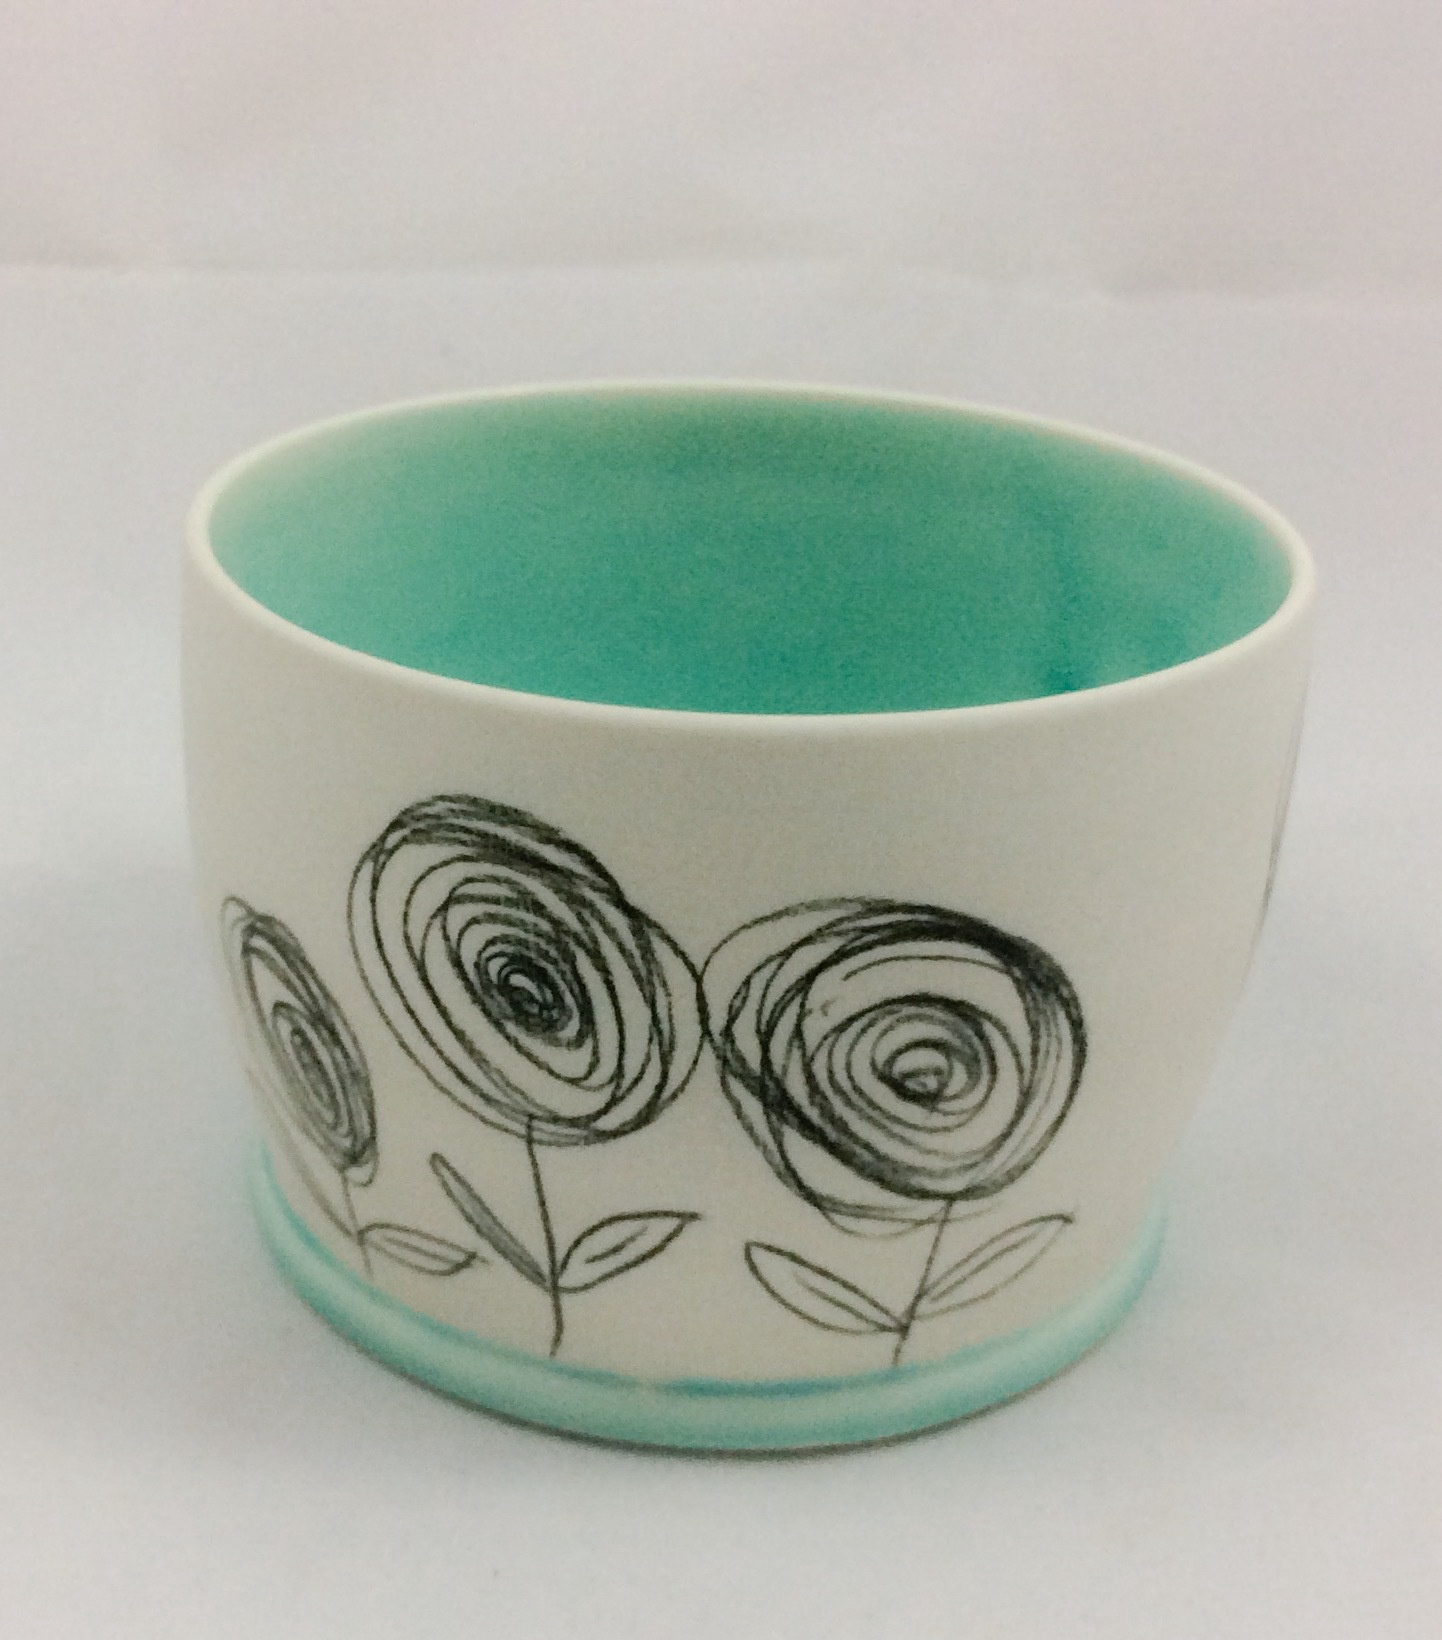 Buttercup Scribble Bowl - Small